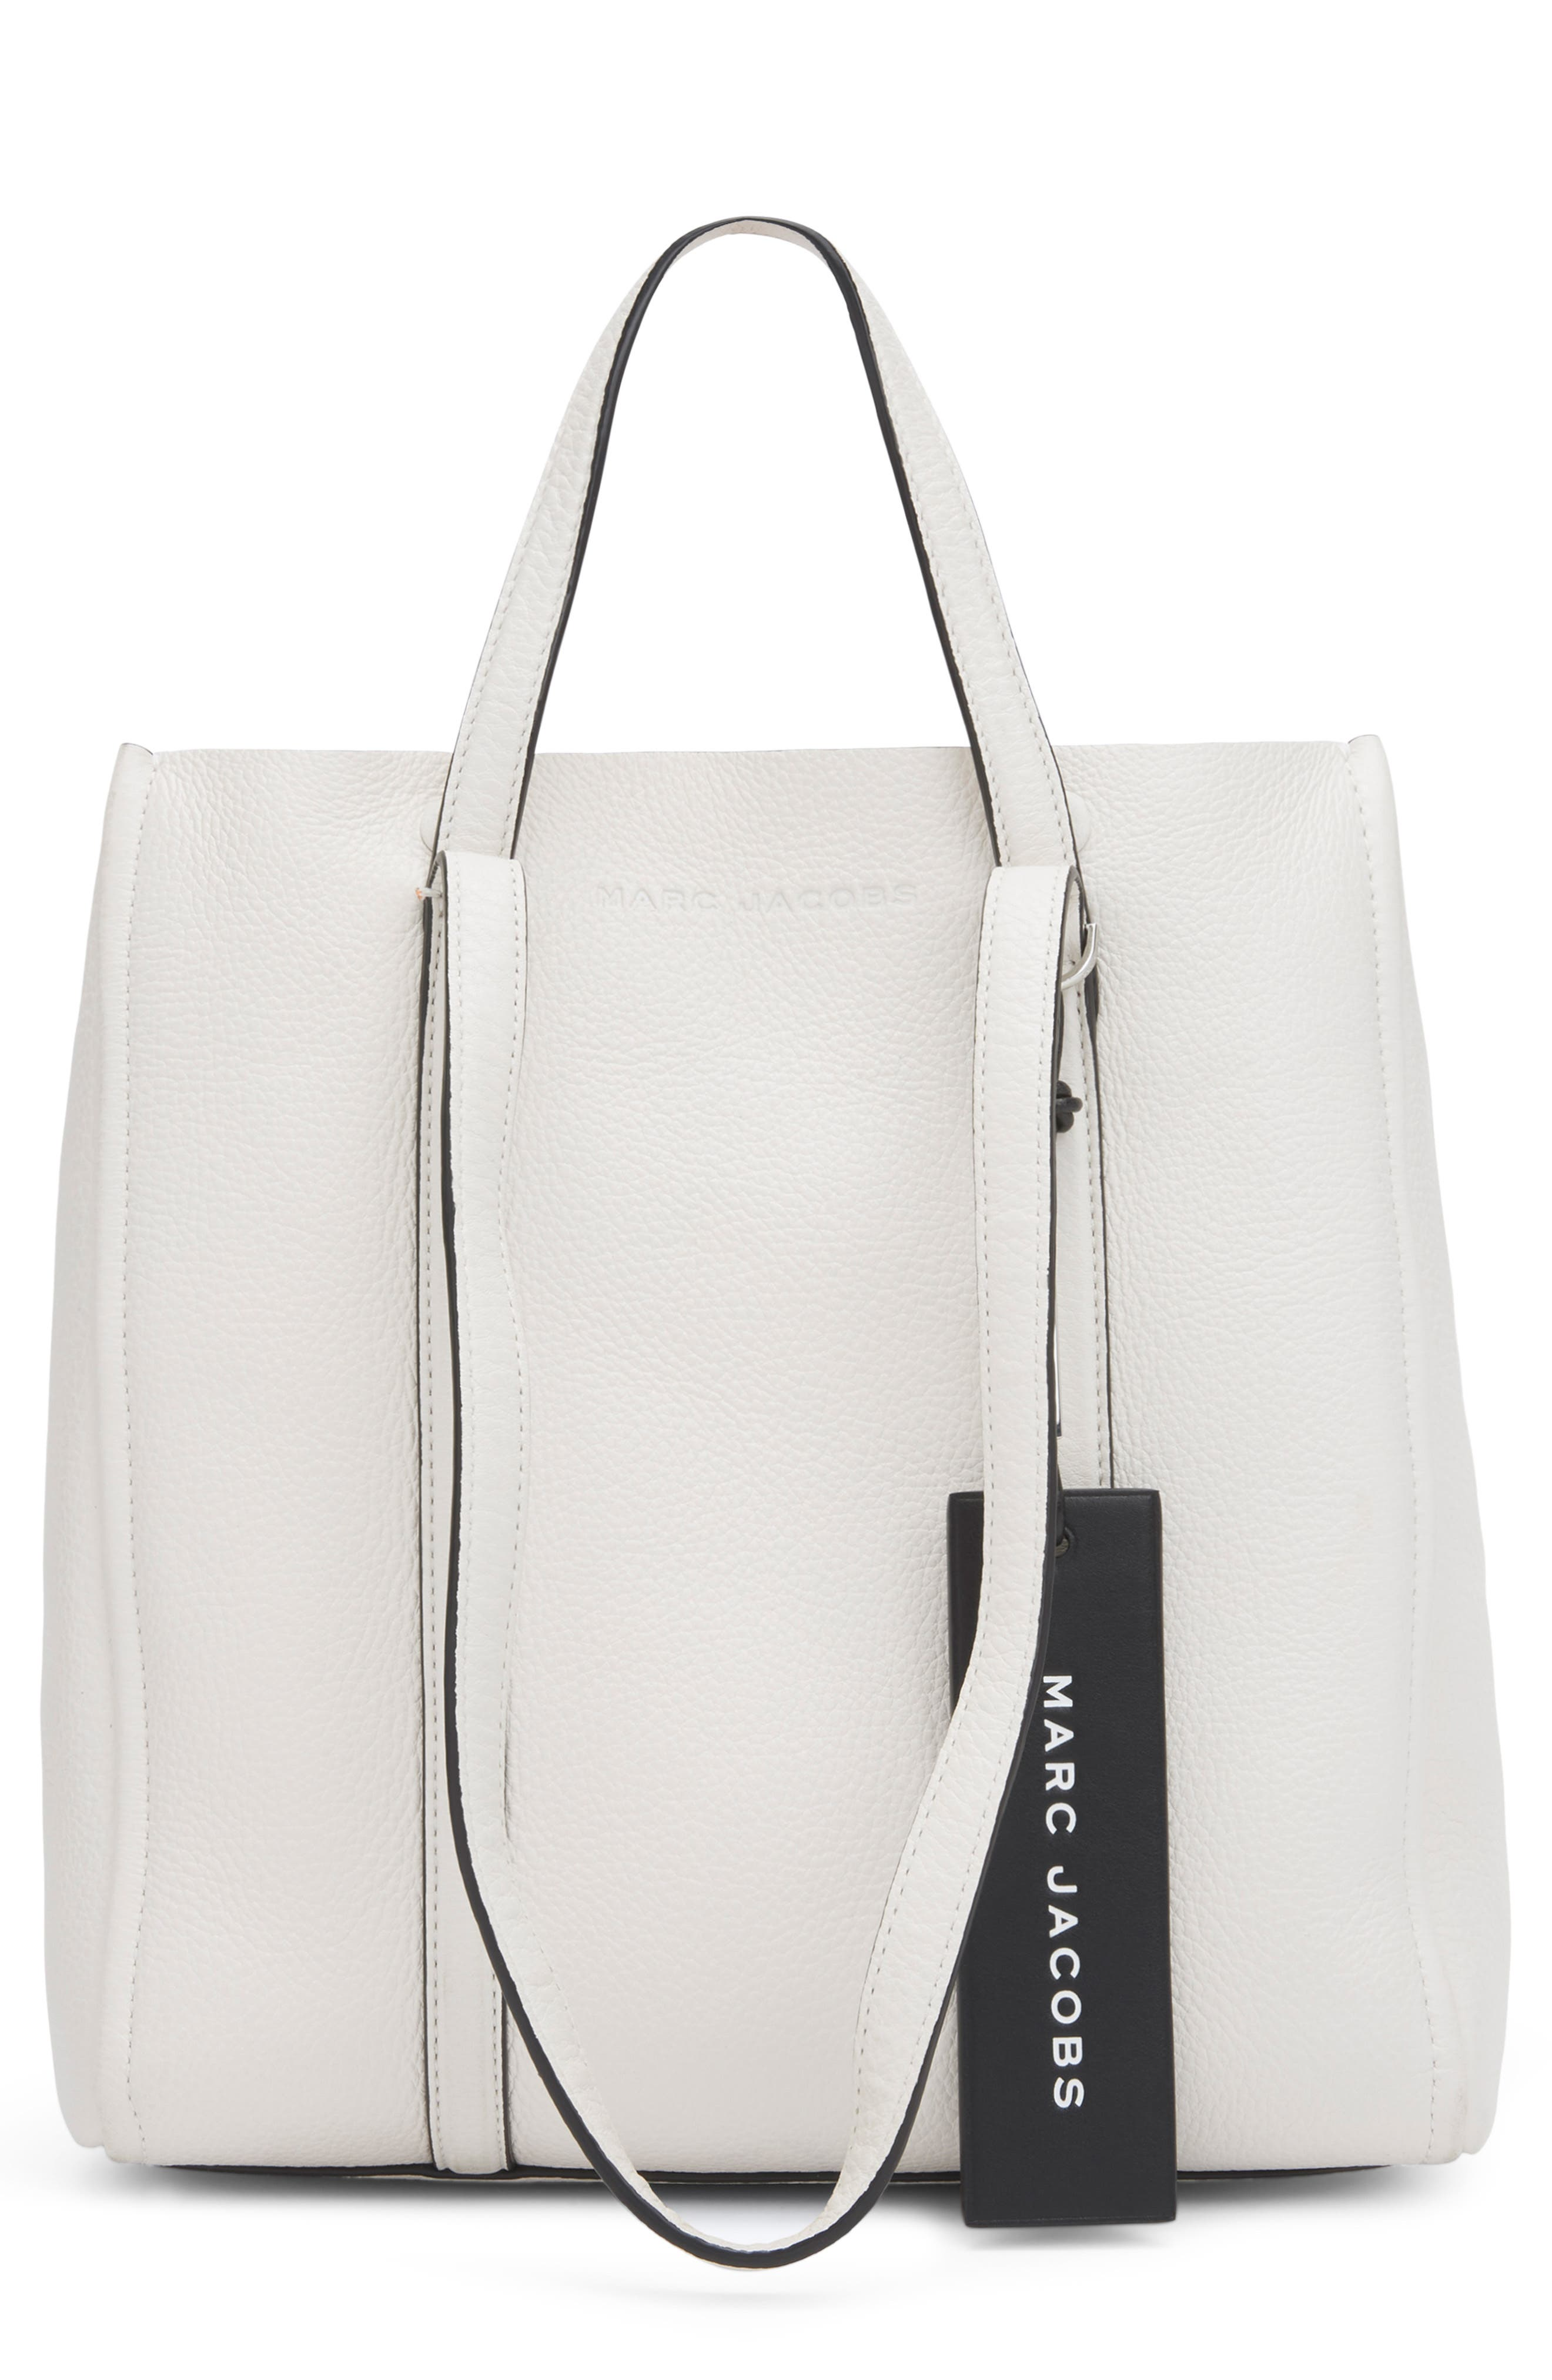 MARC JACOBS,                             The Tag 27 Leather Tote,                             Main thumbnail 1, color,                             PORCELAIN